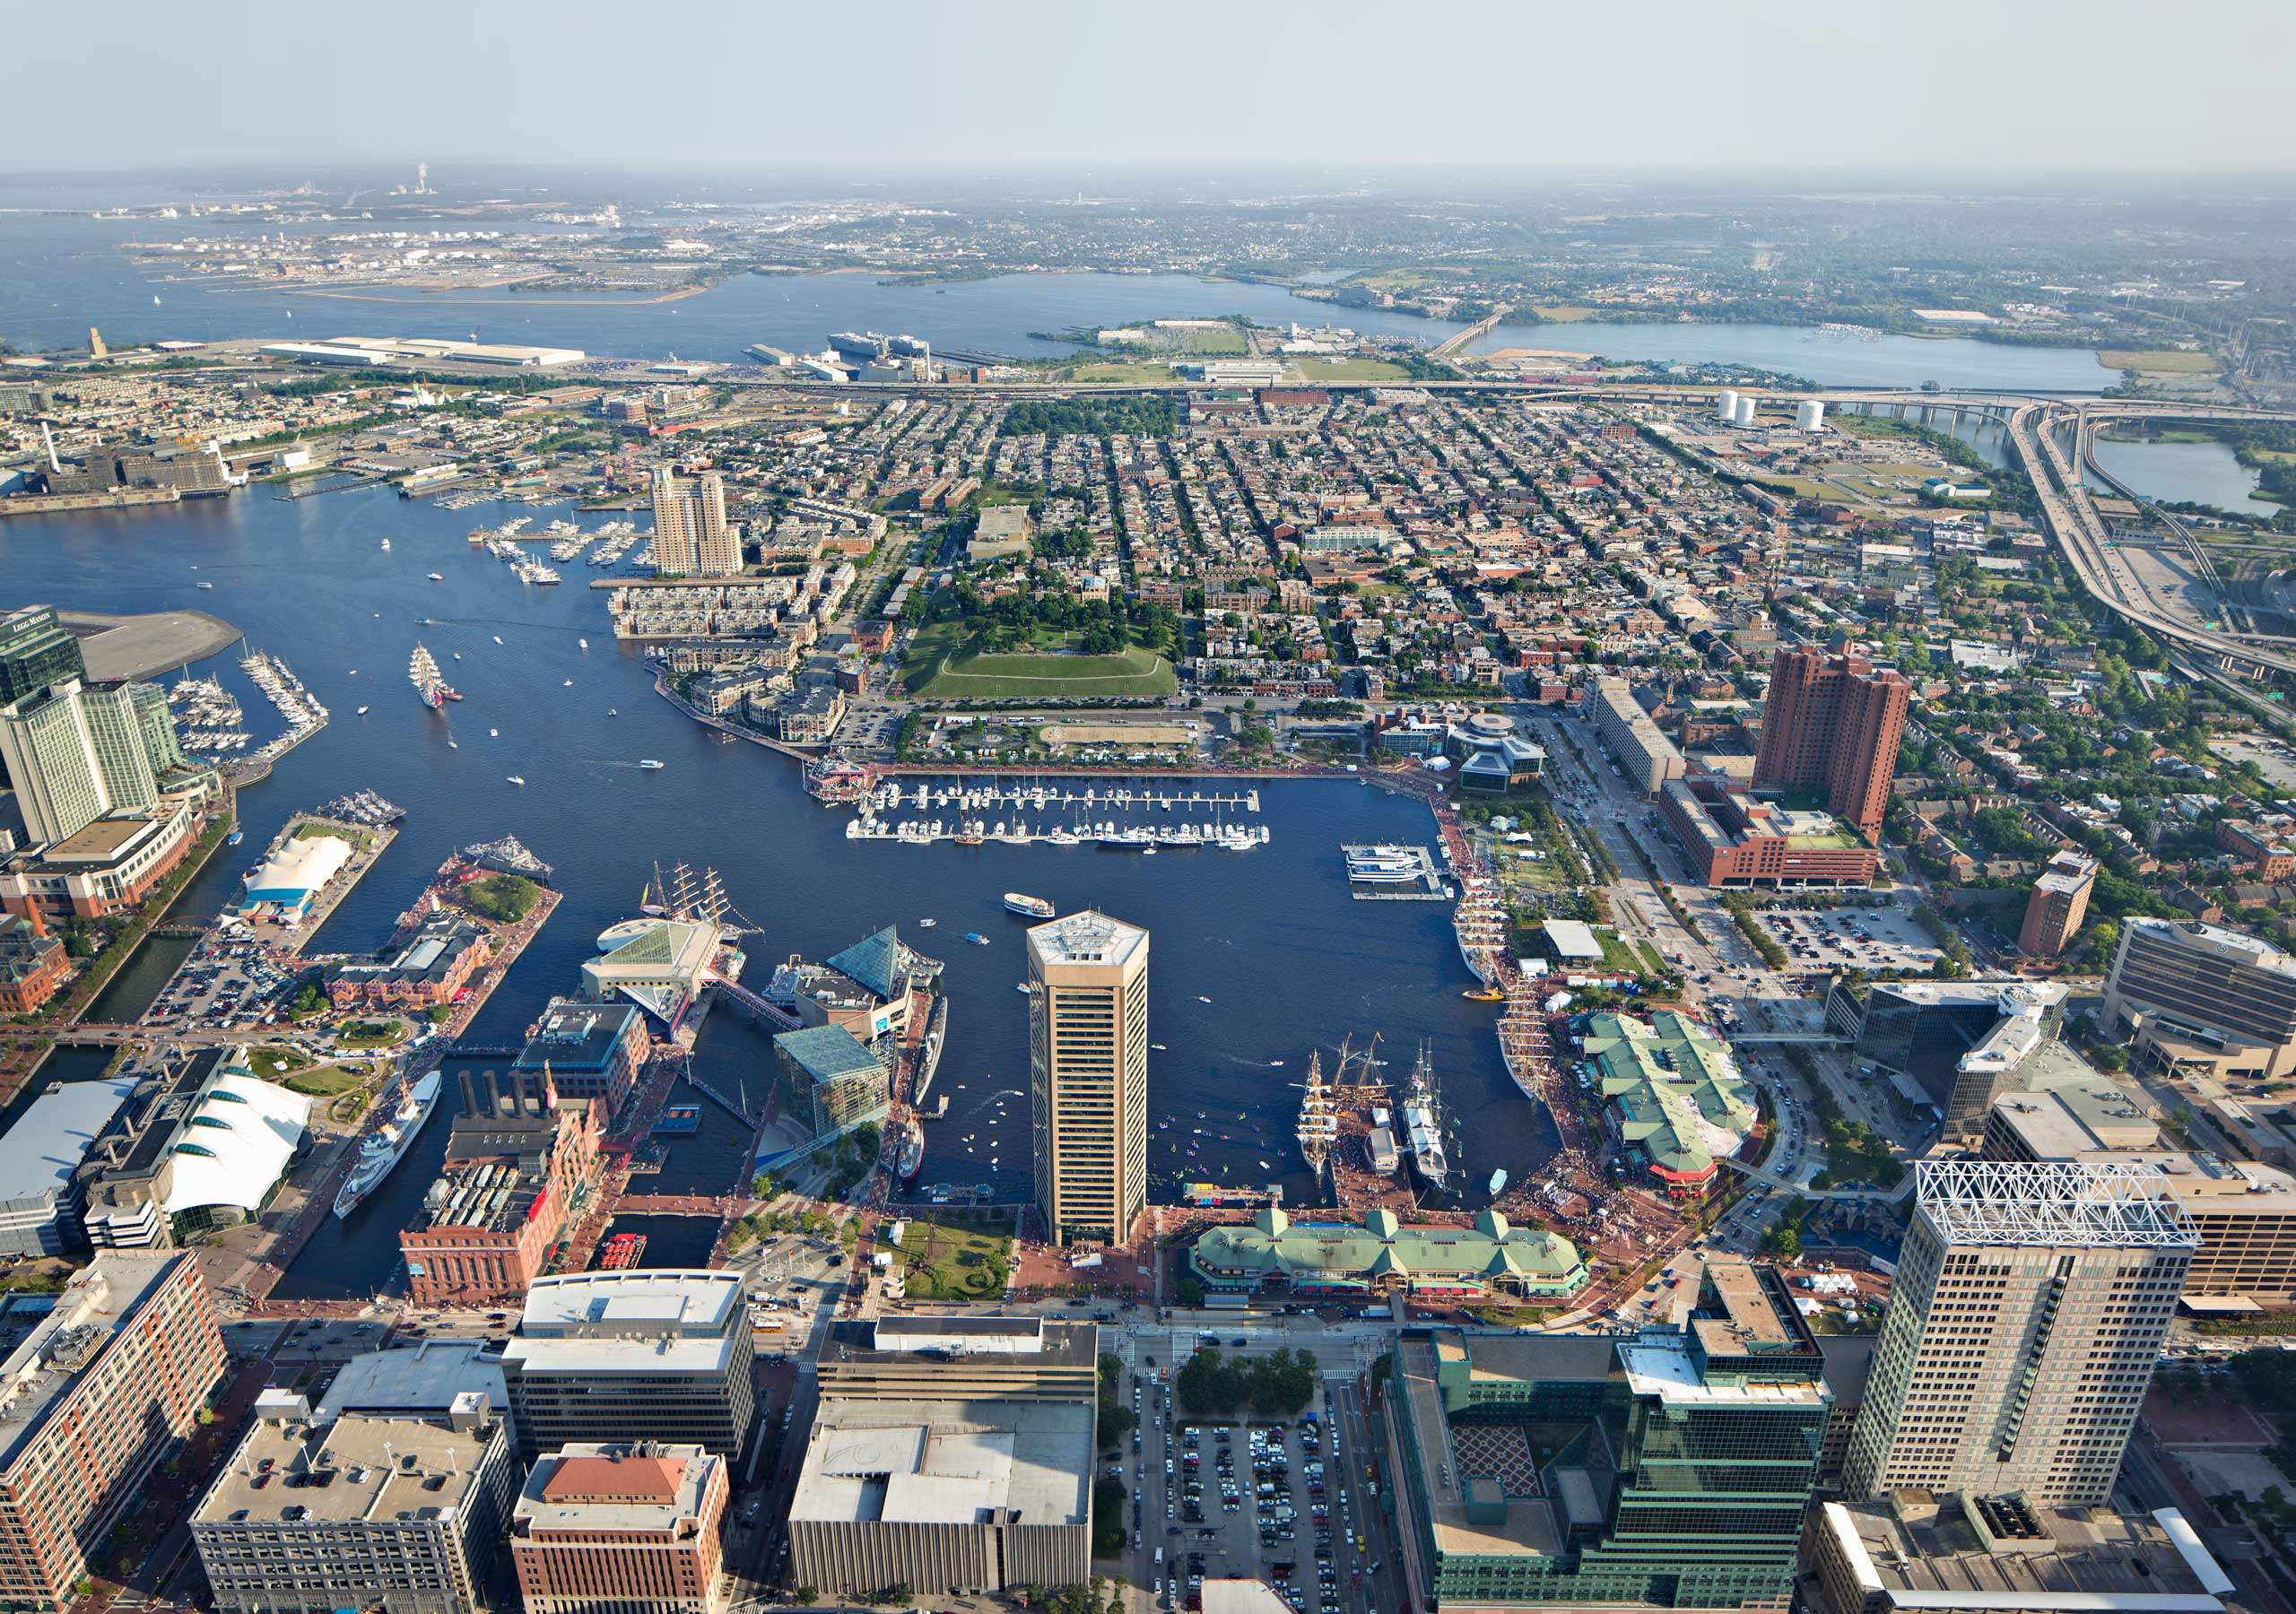 PORTFOLIO - Baltimore - Skylines #5 and Baltimore - Attractions  #25  Aerial View of Baltimore's Inner Harbor PCG 696